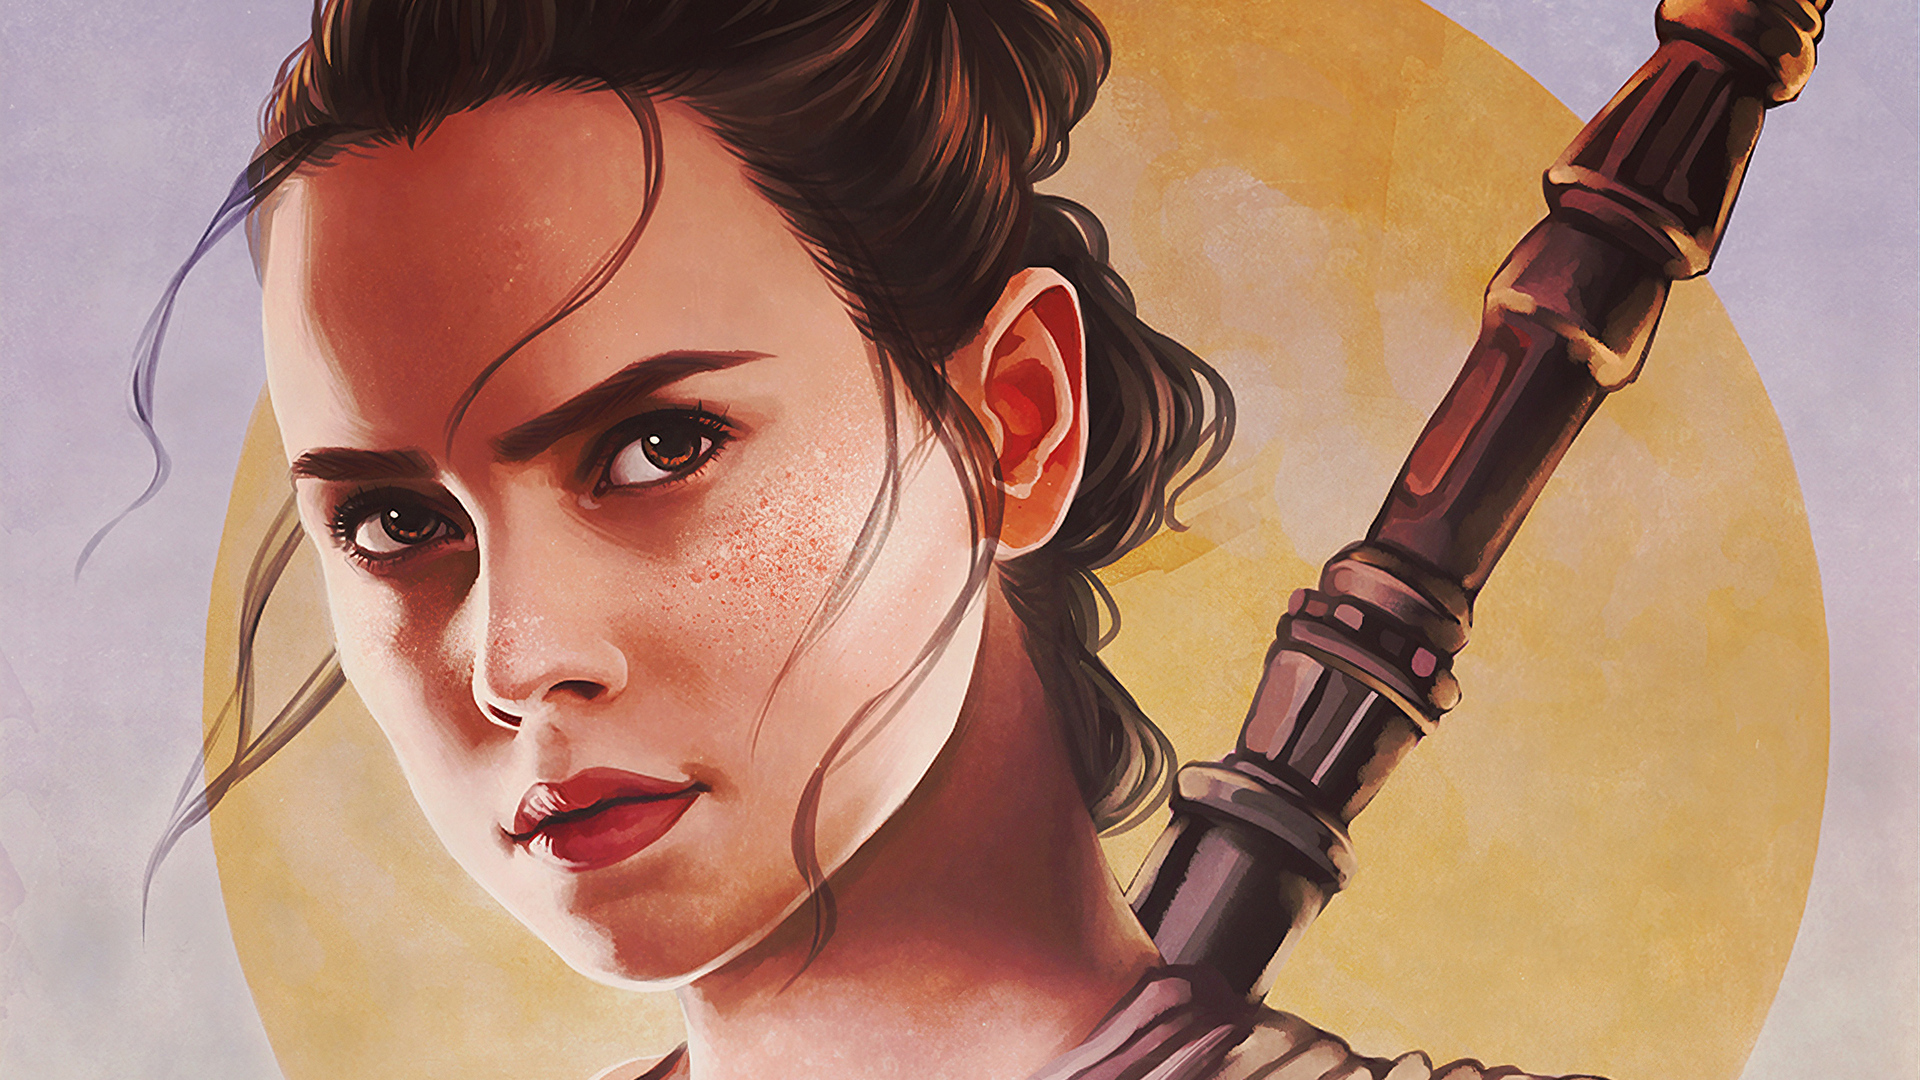 1920x1080 Rey Star Wars Fanart Laptop Full Hd 1080p Hd 4k